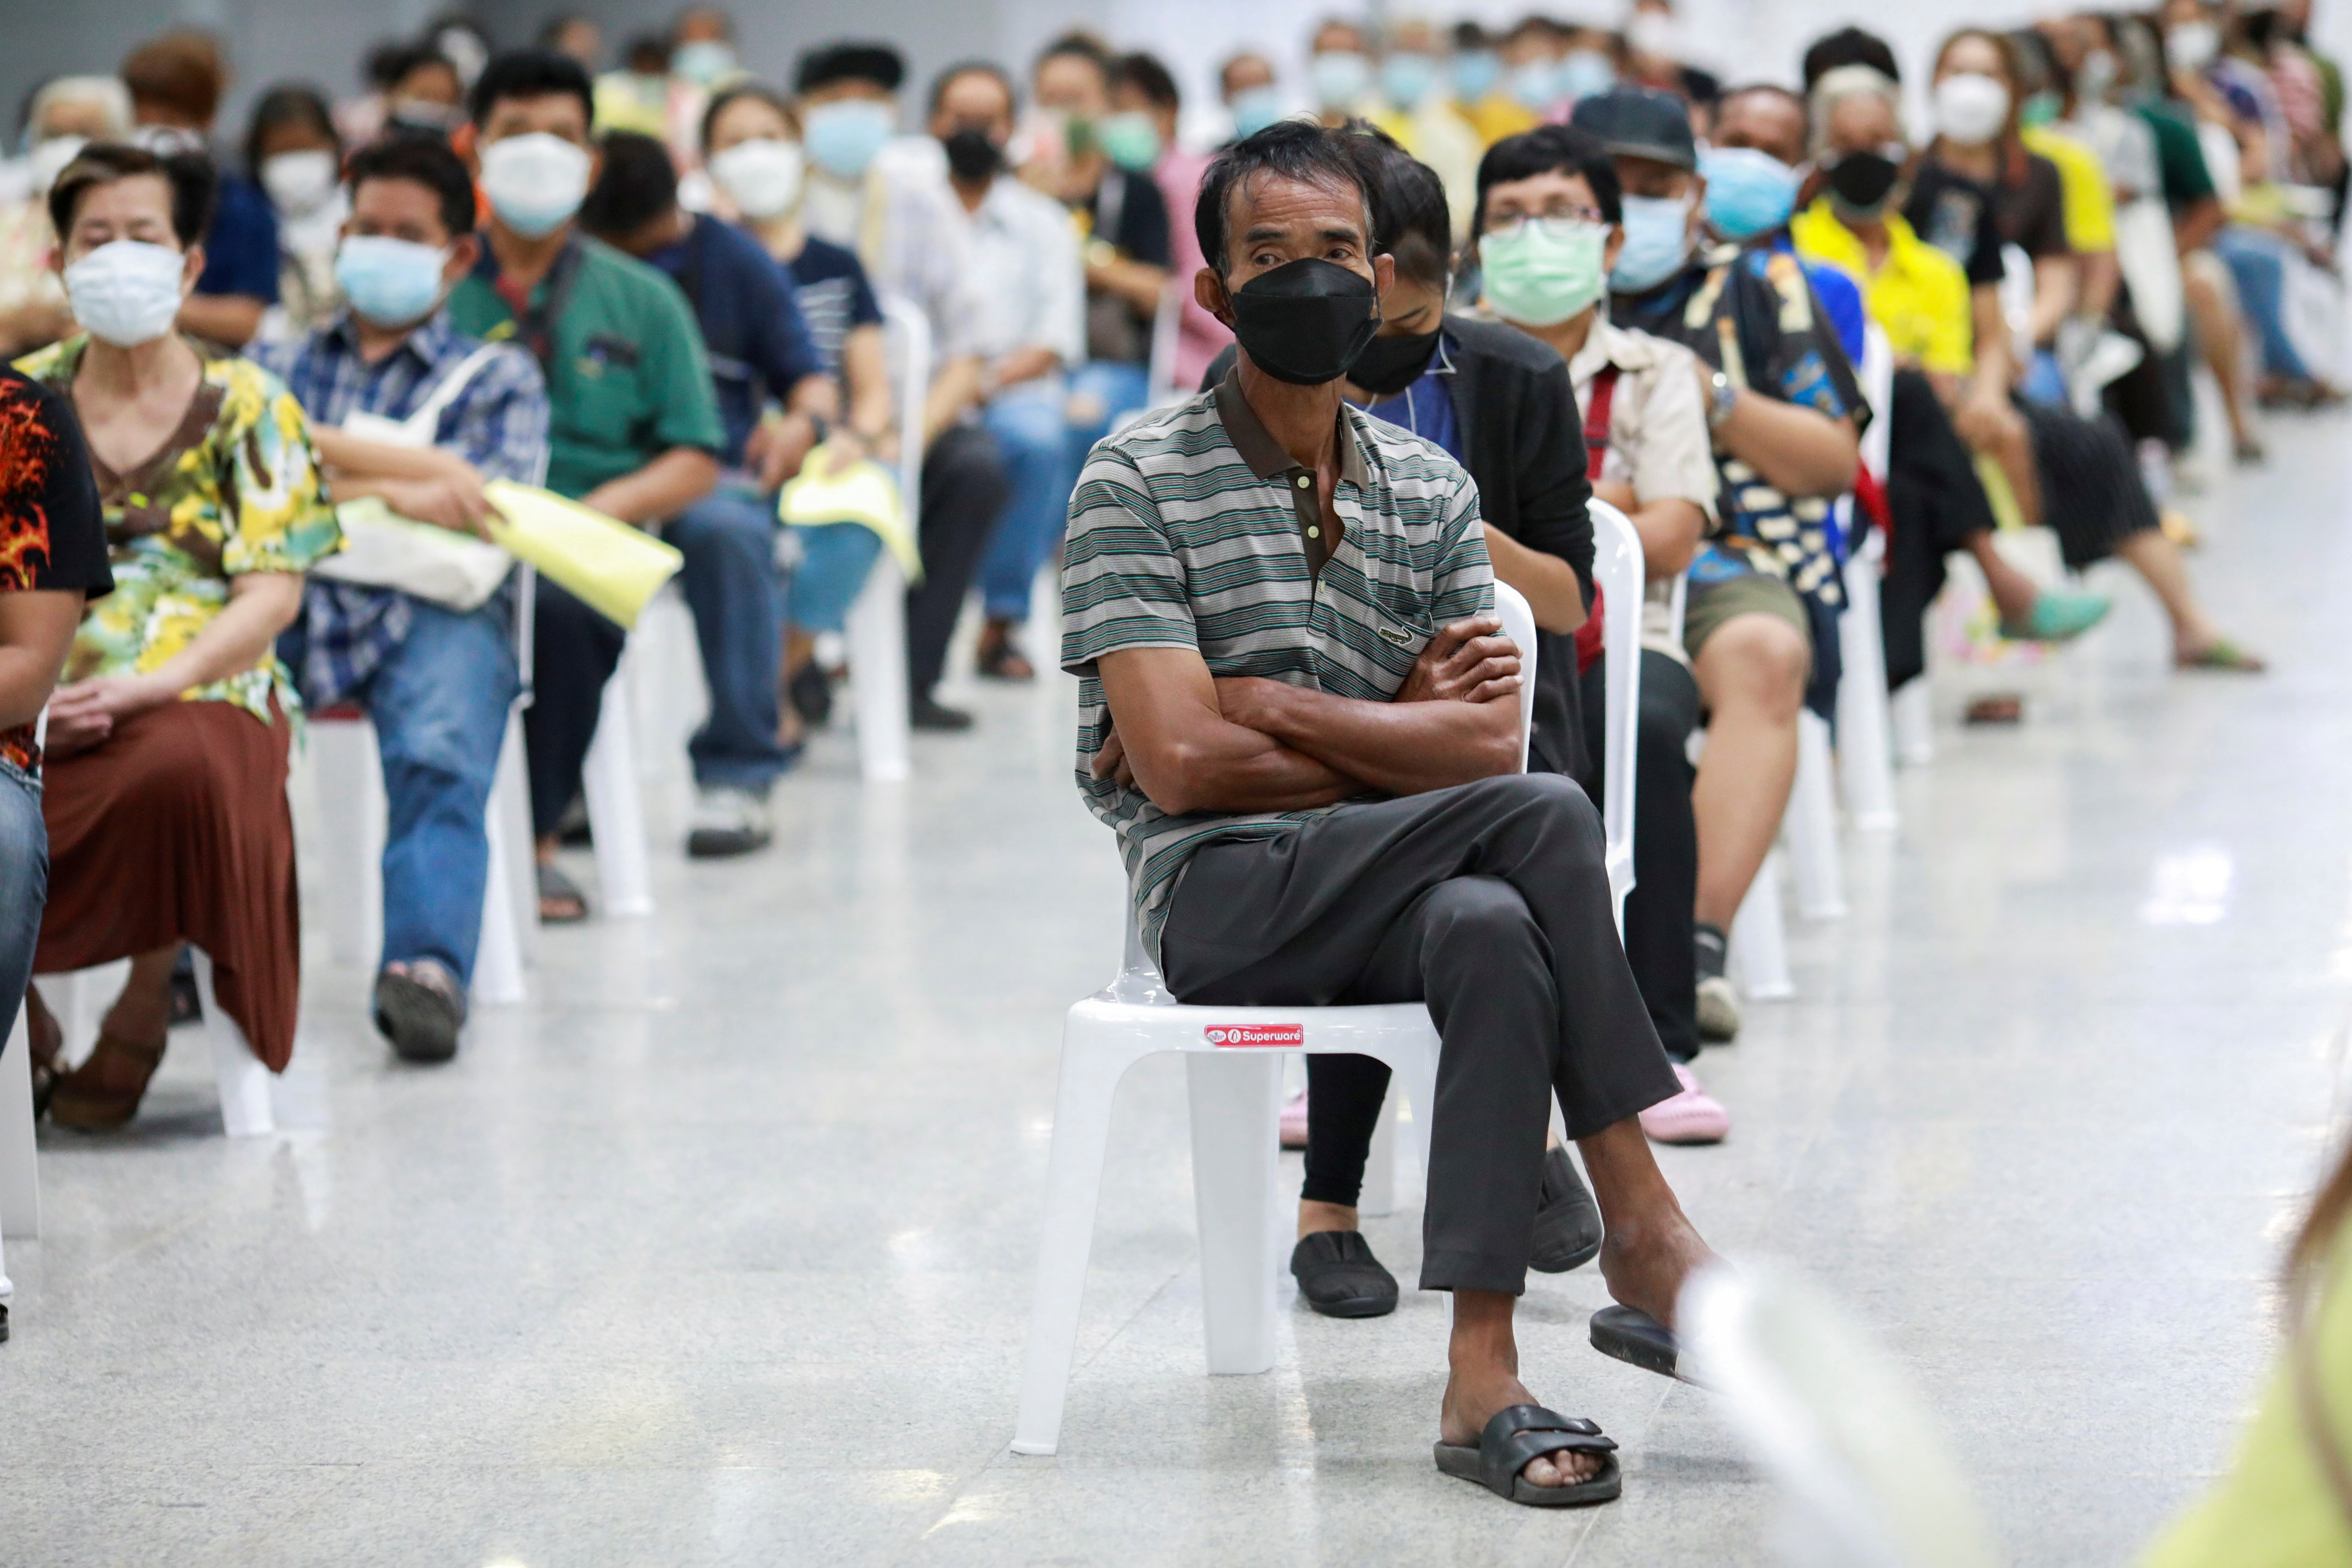 People queue at the Central Vaccination Center as Thailand begins offering first doses of the AstraZeneca vaccine to at-risk groups amid the coronavirus (COVID-19) outbreak in Bangkok, Thailand, July 26, 2021. REUTERS/Soe Zeya Tun